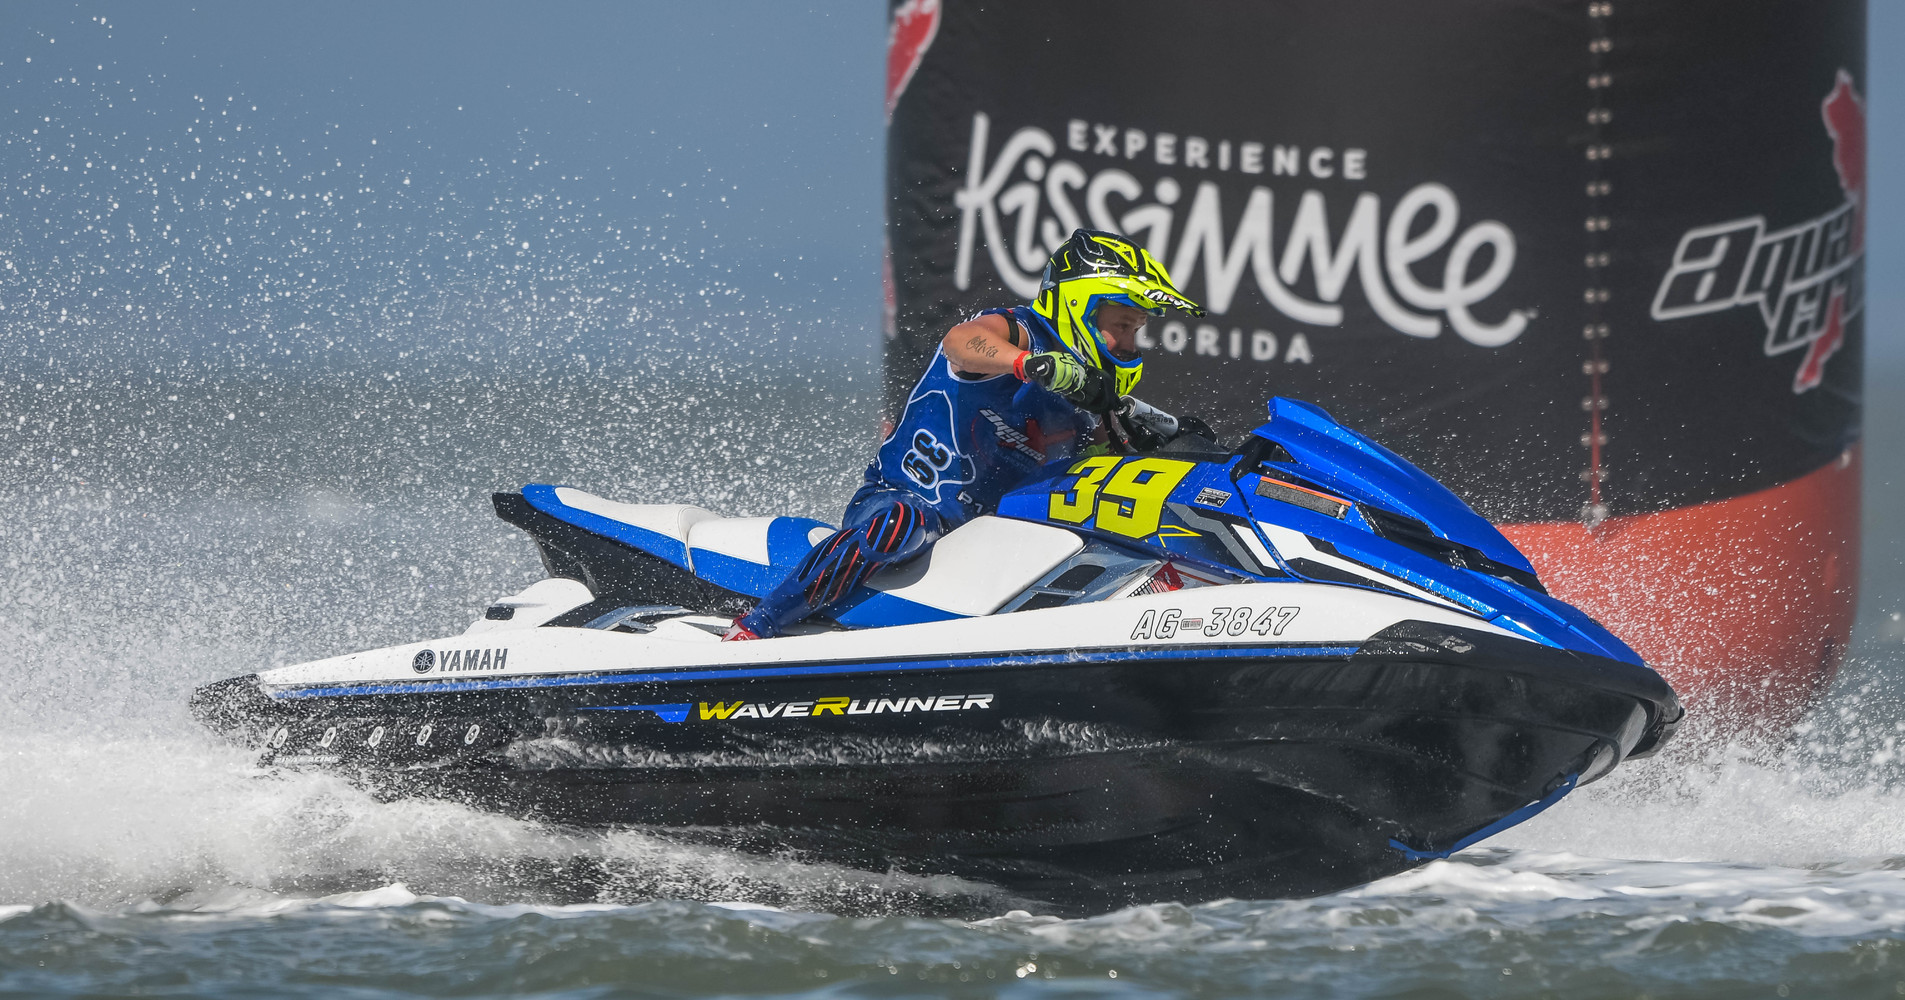 Yamaha SVHO FZR qualifies for the 300 class